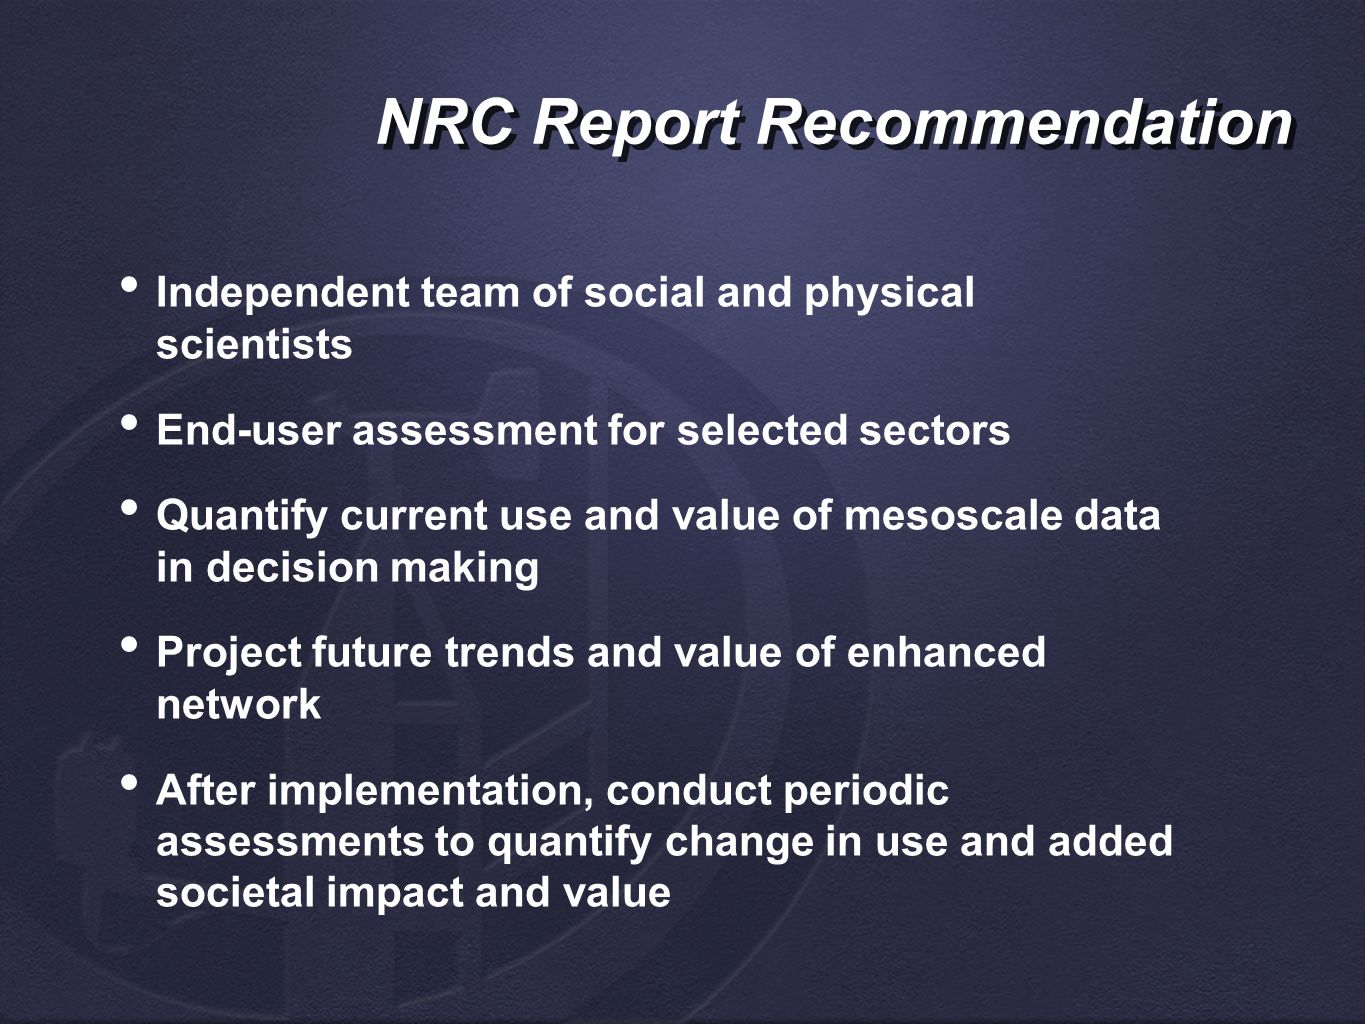 NRC Report Recommendation Independent team of social and physical scientists End-user assessment for selected sectors Quantify current use and value of mesoscale data in decision making Project future trends and value of enhanced network After implementation, conduct periodic assessments to quantify change in use and added societal impact and value